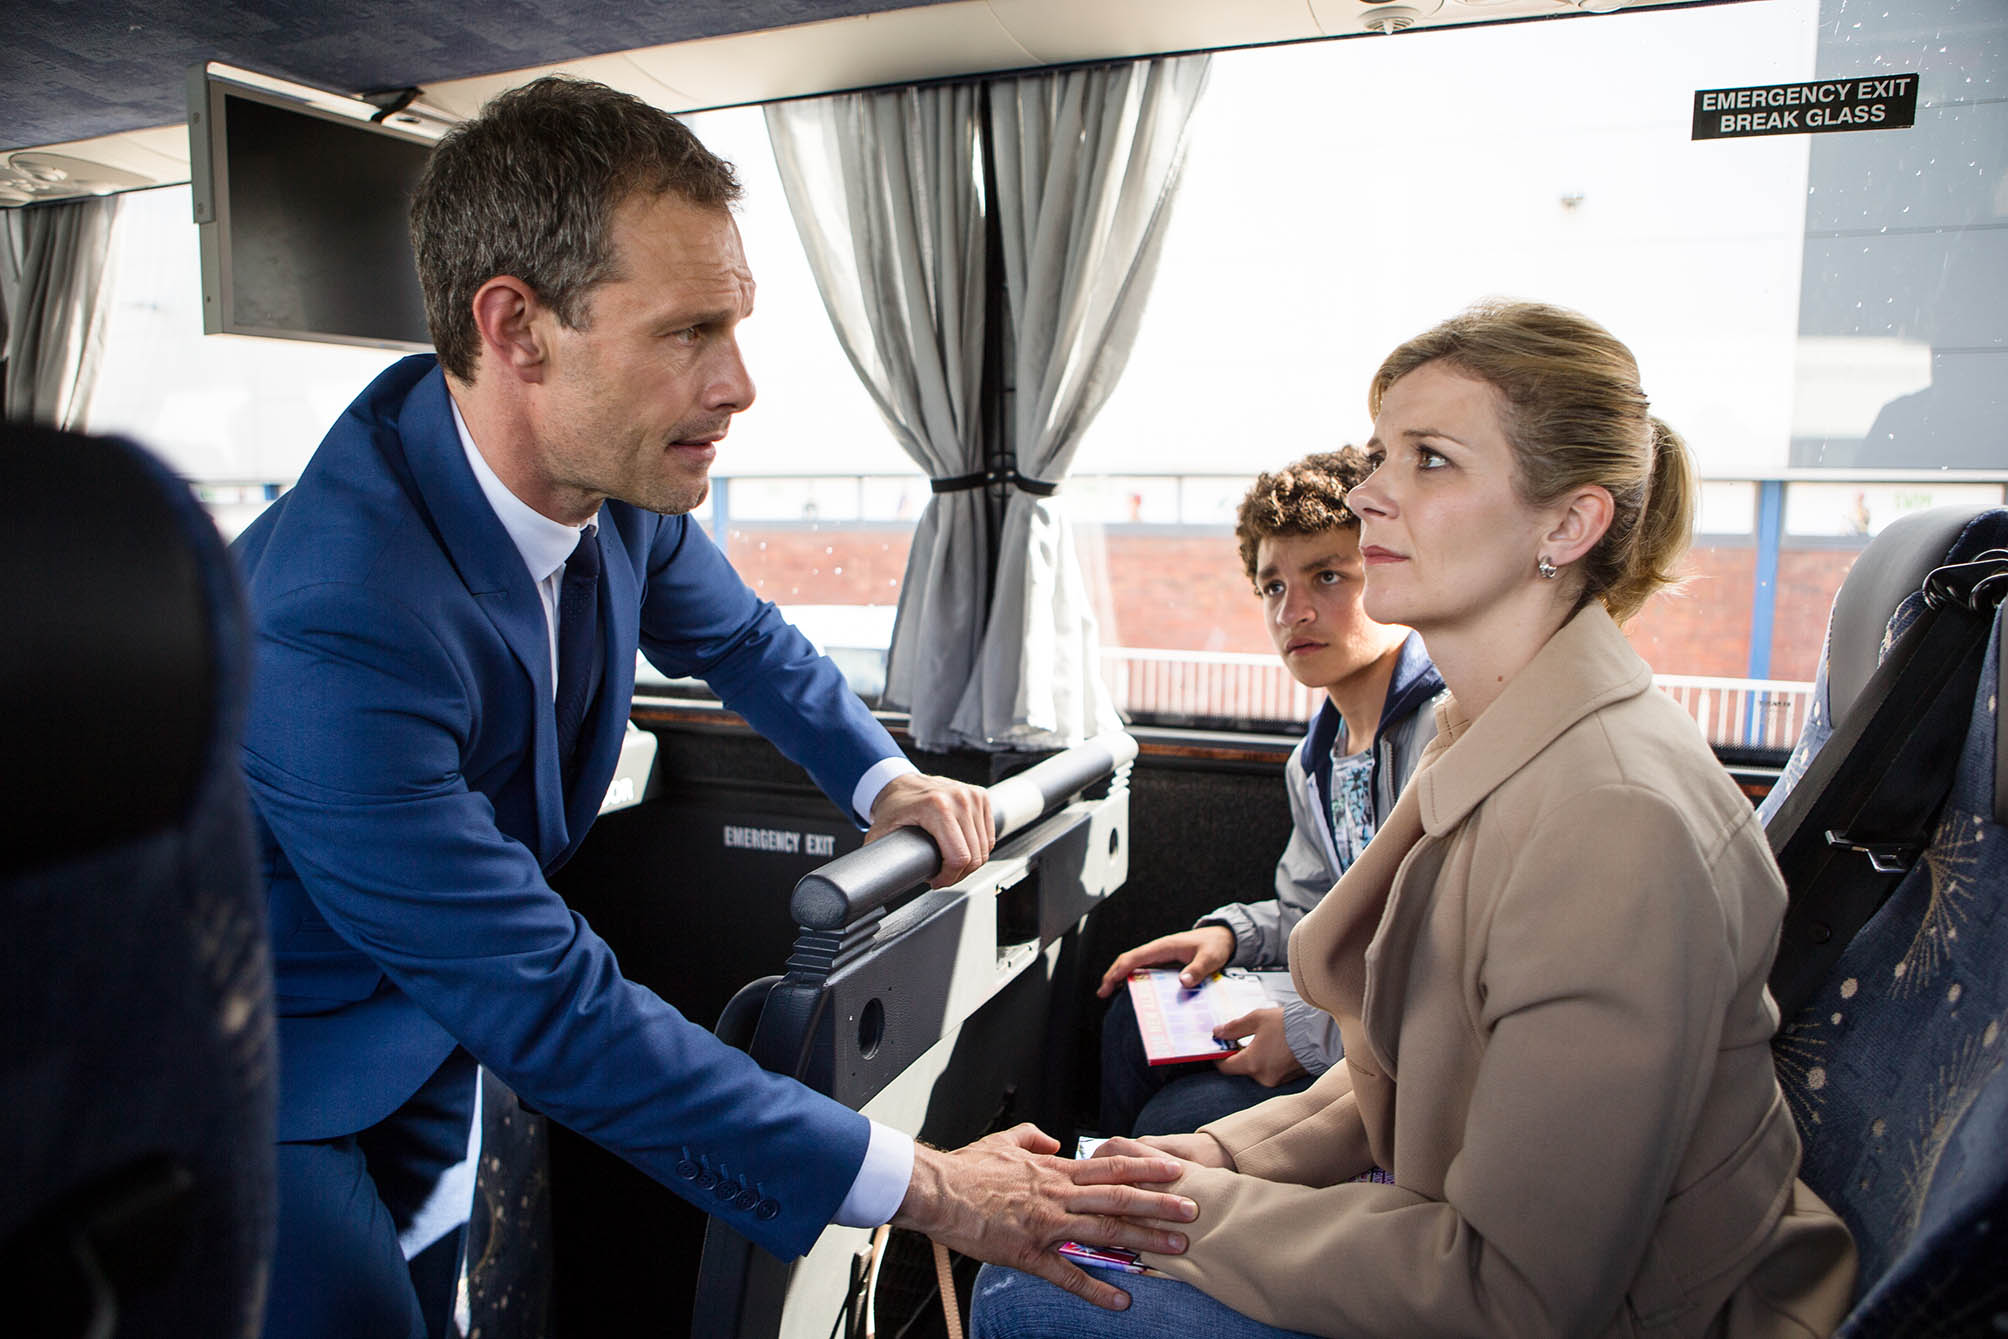 FROM ITV STRICT EMBARGO - NO USE BEFORE TUESDAY 16 AUGUST 2016 Coronation Street - Ep 8974 Monday 22 August 2016 - 2nd Ep As the coach readies to leave, Nick Tilsley [BEN PRICE] scrambles on board and begging Leanne Tilsley [JANE DANSON] not to go, tells her that he knows about the baby. Leanne's stunned. As Simon Barlow [ALEX BAIN] waits with bated breath will the pair admit their love for each other? Picture contact: david.crook@itv.com on 0161 952 6214 Photographer: Mark Bruce This photograph is (C) ITV Plc and can only be reproduced for editorial purposes directly in connection with the programme or event mentioned above, or ITV plc. Once made available by ITV plc Picture Desk, this photograph can be reproduced once only up until the transmission [TX] date and no reproduction fee will be charged. Any subsequent usage may incur a fee. This photograph must not be manipulated [excluding basic cropping] in a manner which alters the visual appearance of the person photographed deemed detrimental or inappropriate by ITV plc Picture Desk. This photograph must not be syndicated to any other company, publication or website, or permanently archived, without the express written permission of ITV Plc Picture Desk. Full Terms and conditions are available on the website www.itvpictures.com